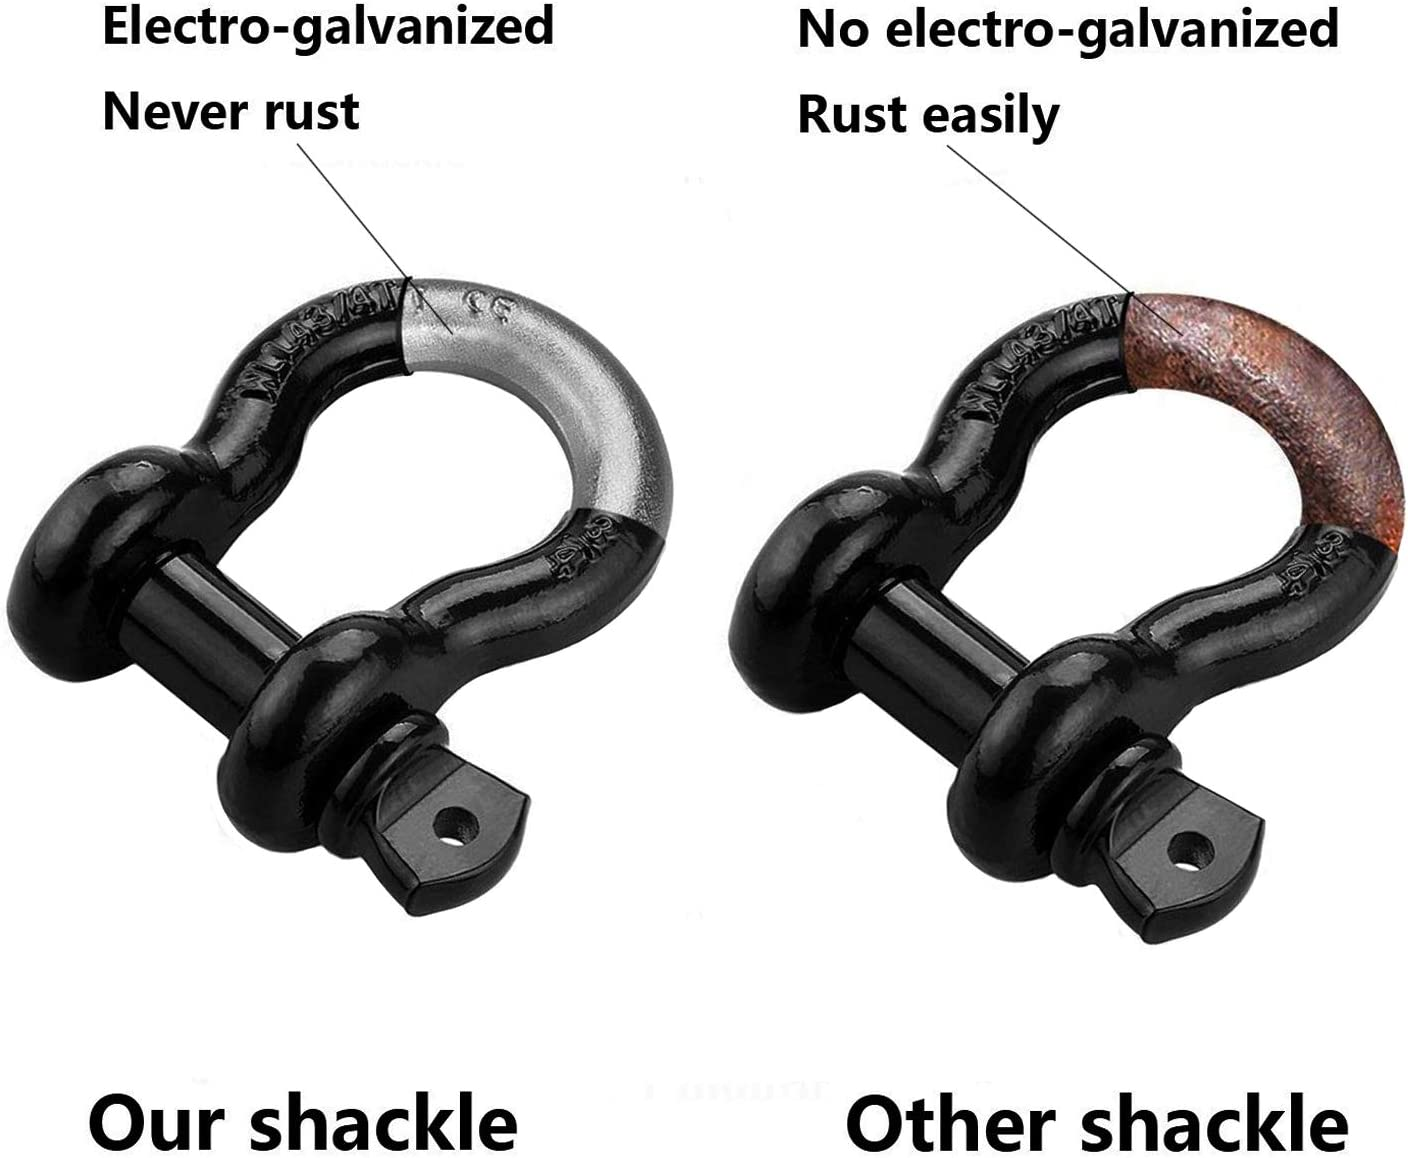 Ucreative 3//4 D Ring Shackle Rugged Off Road 28.5 Ton 57,000 lbs Maximum Break Strength with 7//8 Pin Heavy Duty for Jeep Vehicle Recovery 2-Pack